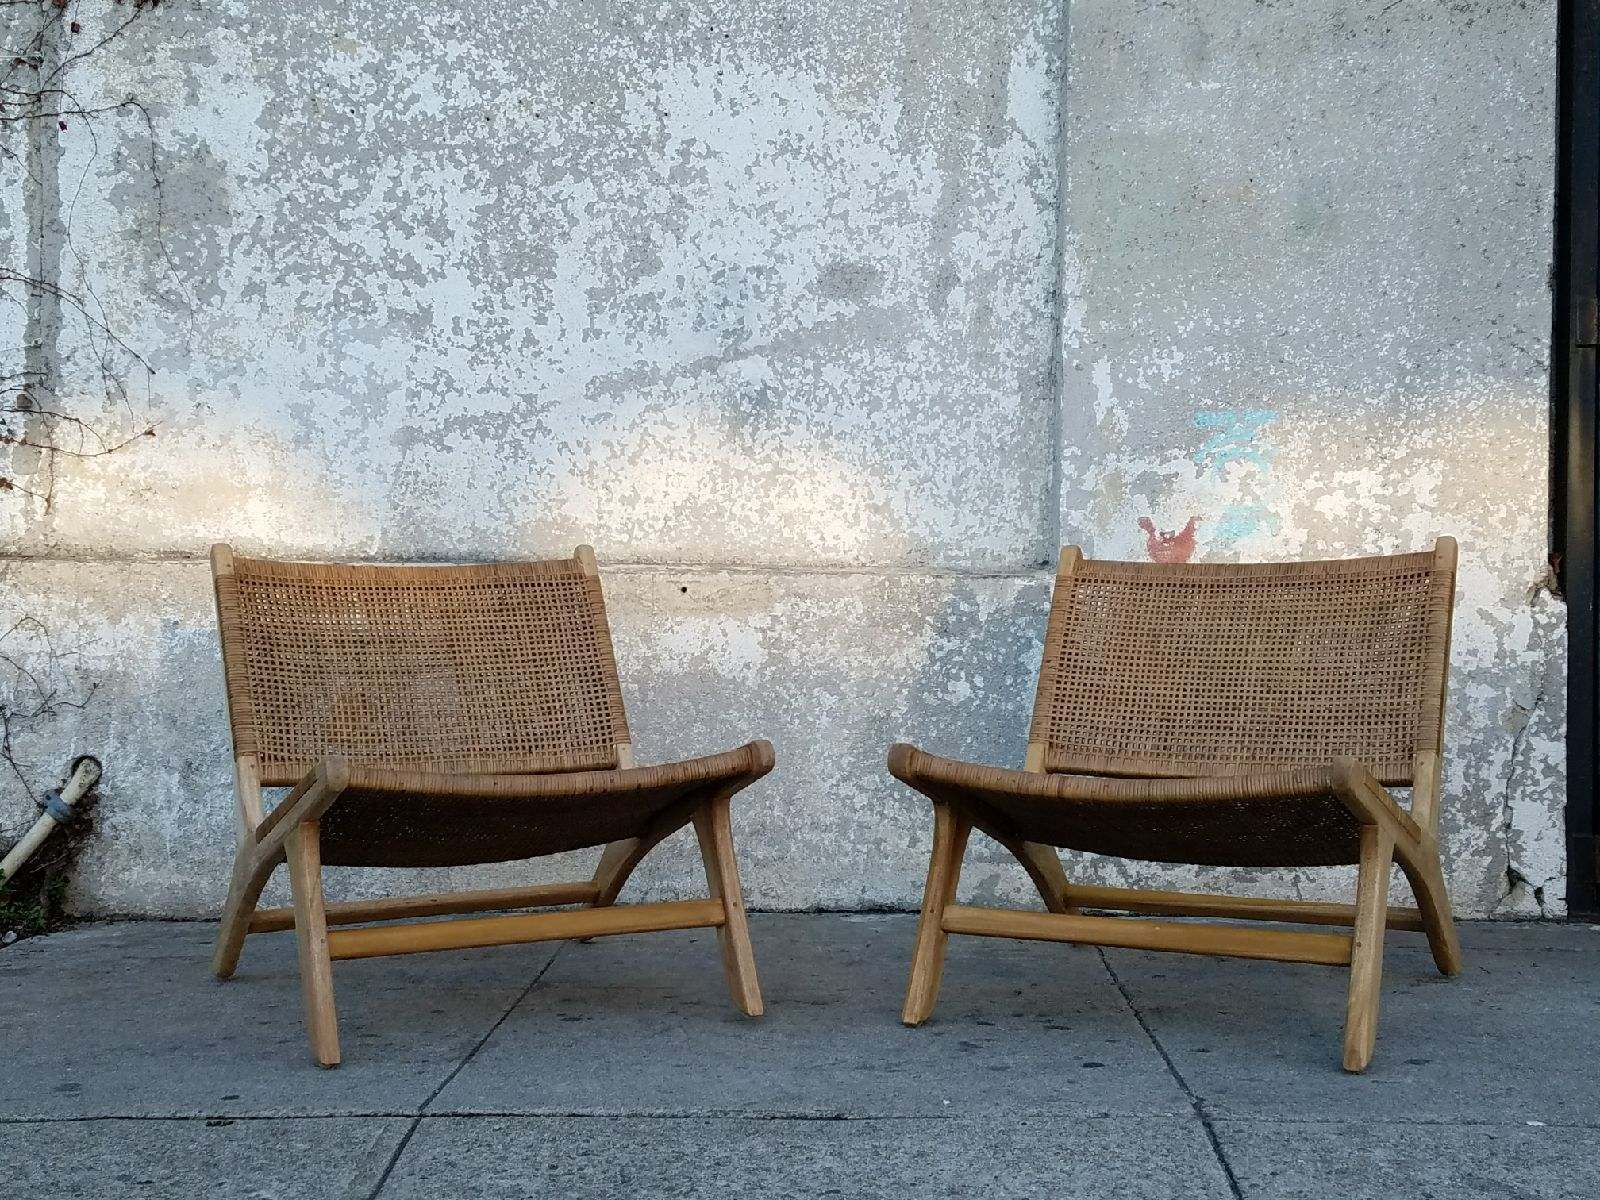 Low Profile Teak Lounge Chair With Caning Living Room Chairs Teak Lounge Chair Chair